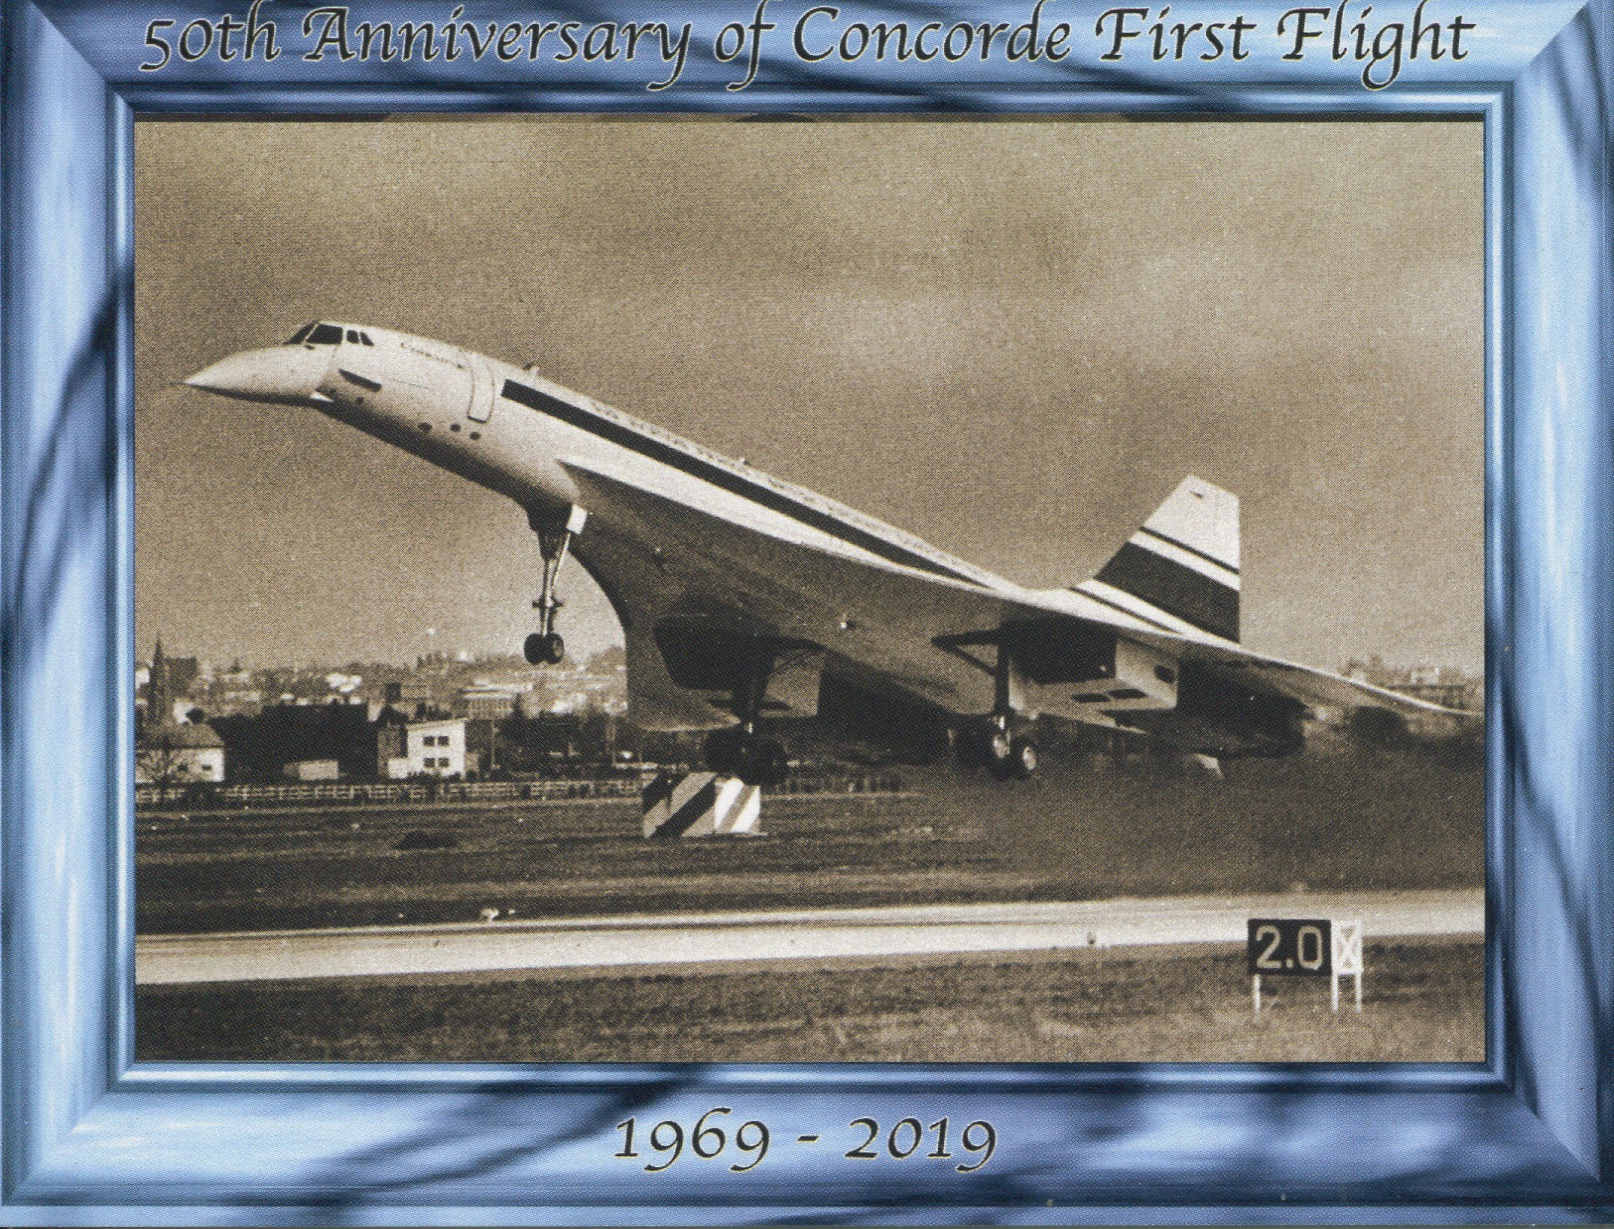 50th Anniversary of Concorde First Flight